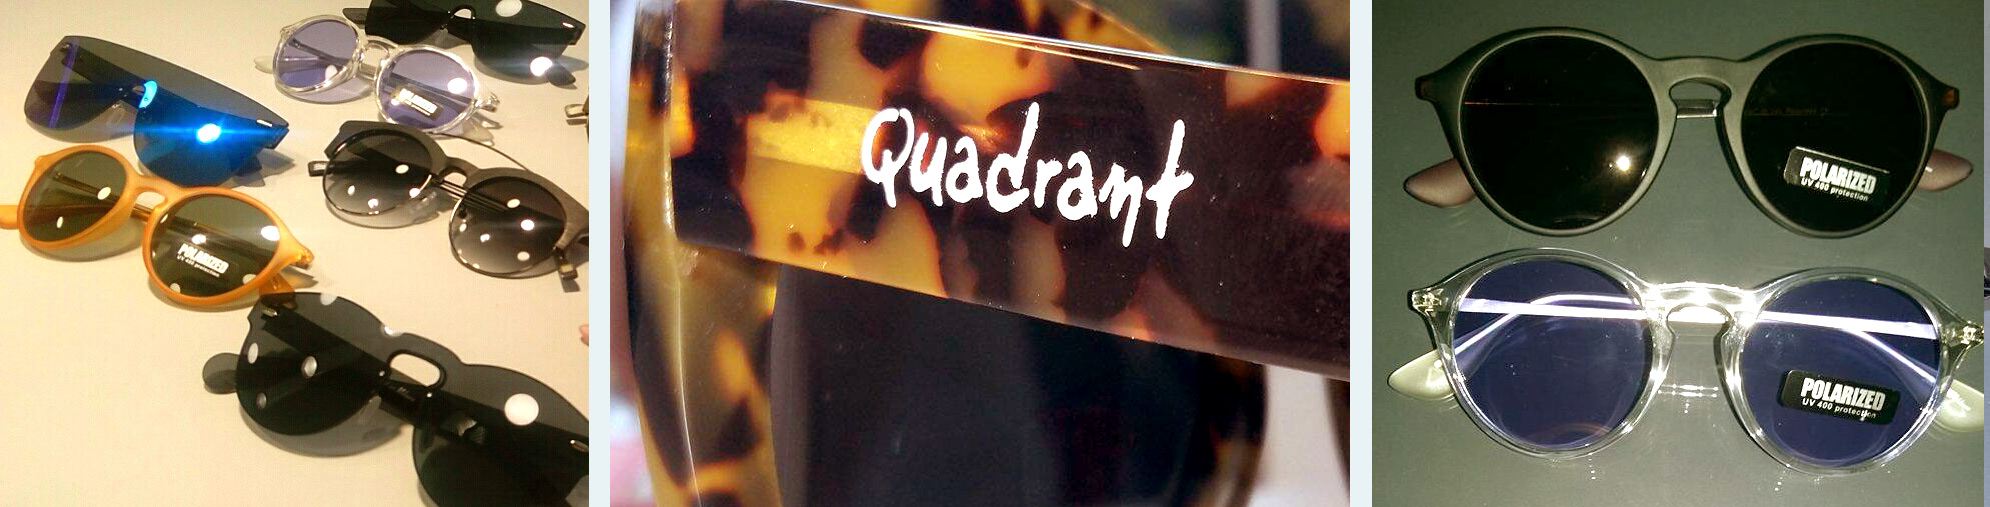 Quadrant eye glasses